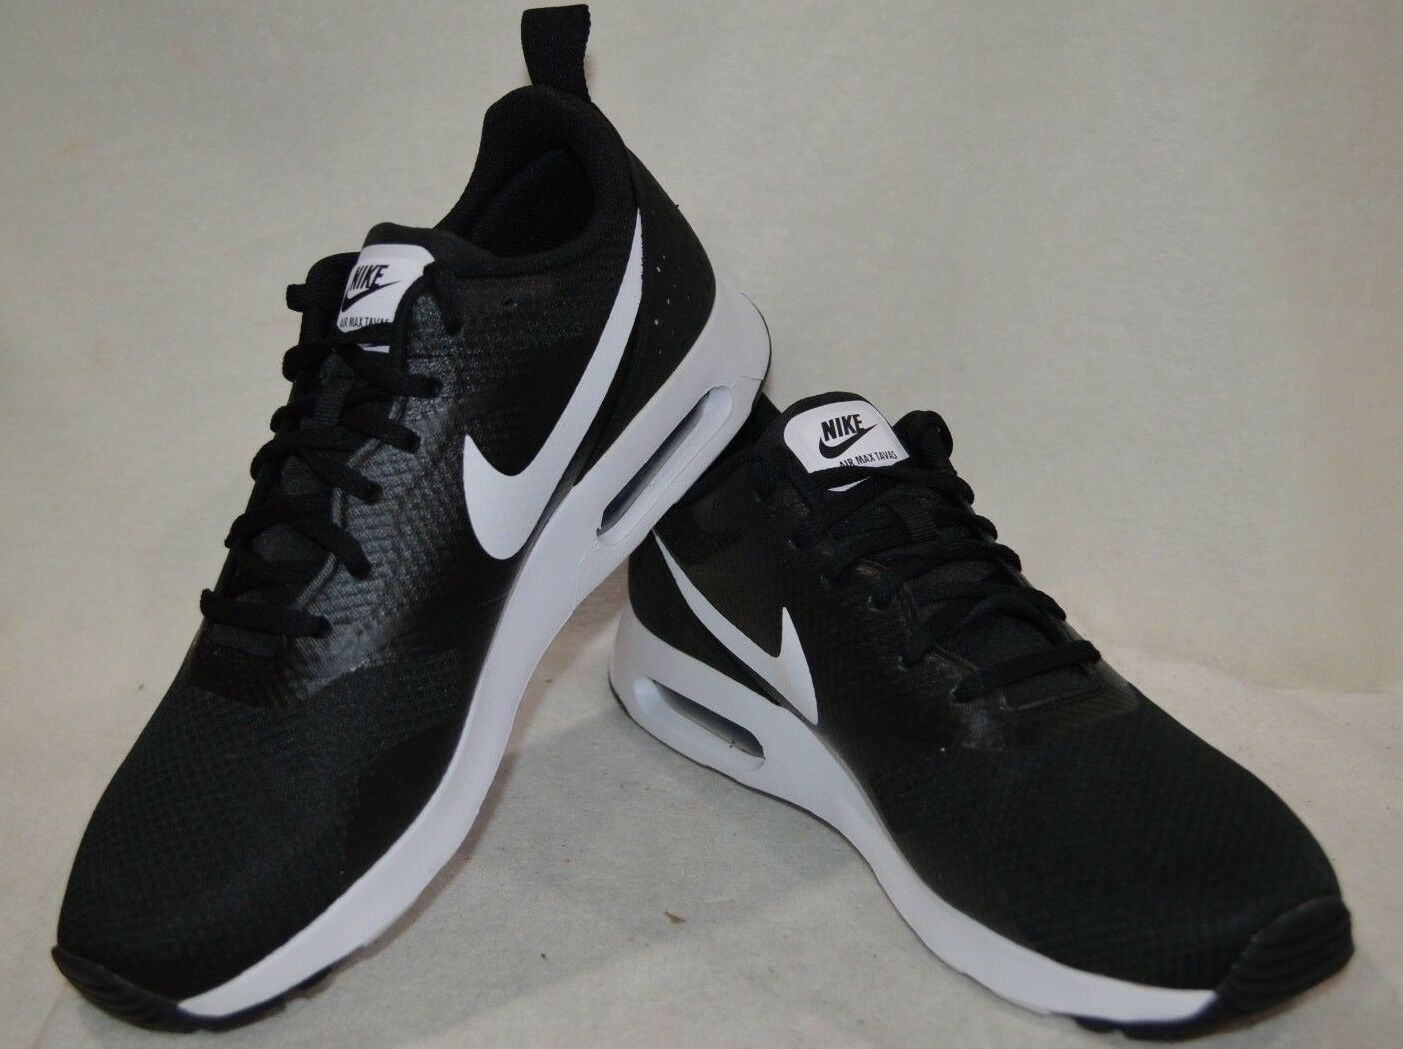 Nike Air Max Tavas Black White Men's Men's Men's Running shoes-Assorted Sizes NWB 705149-009 2b284f